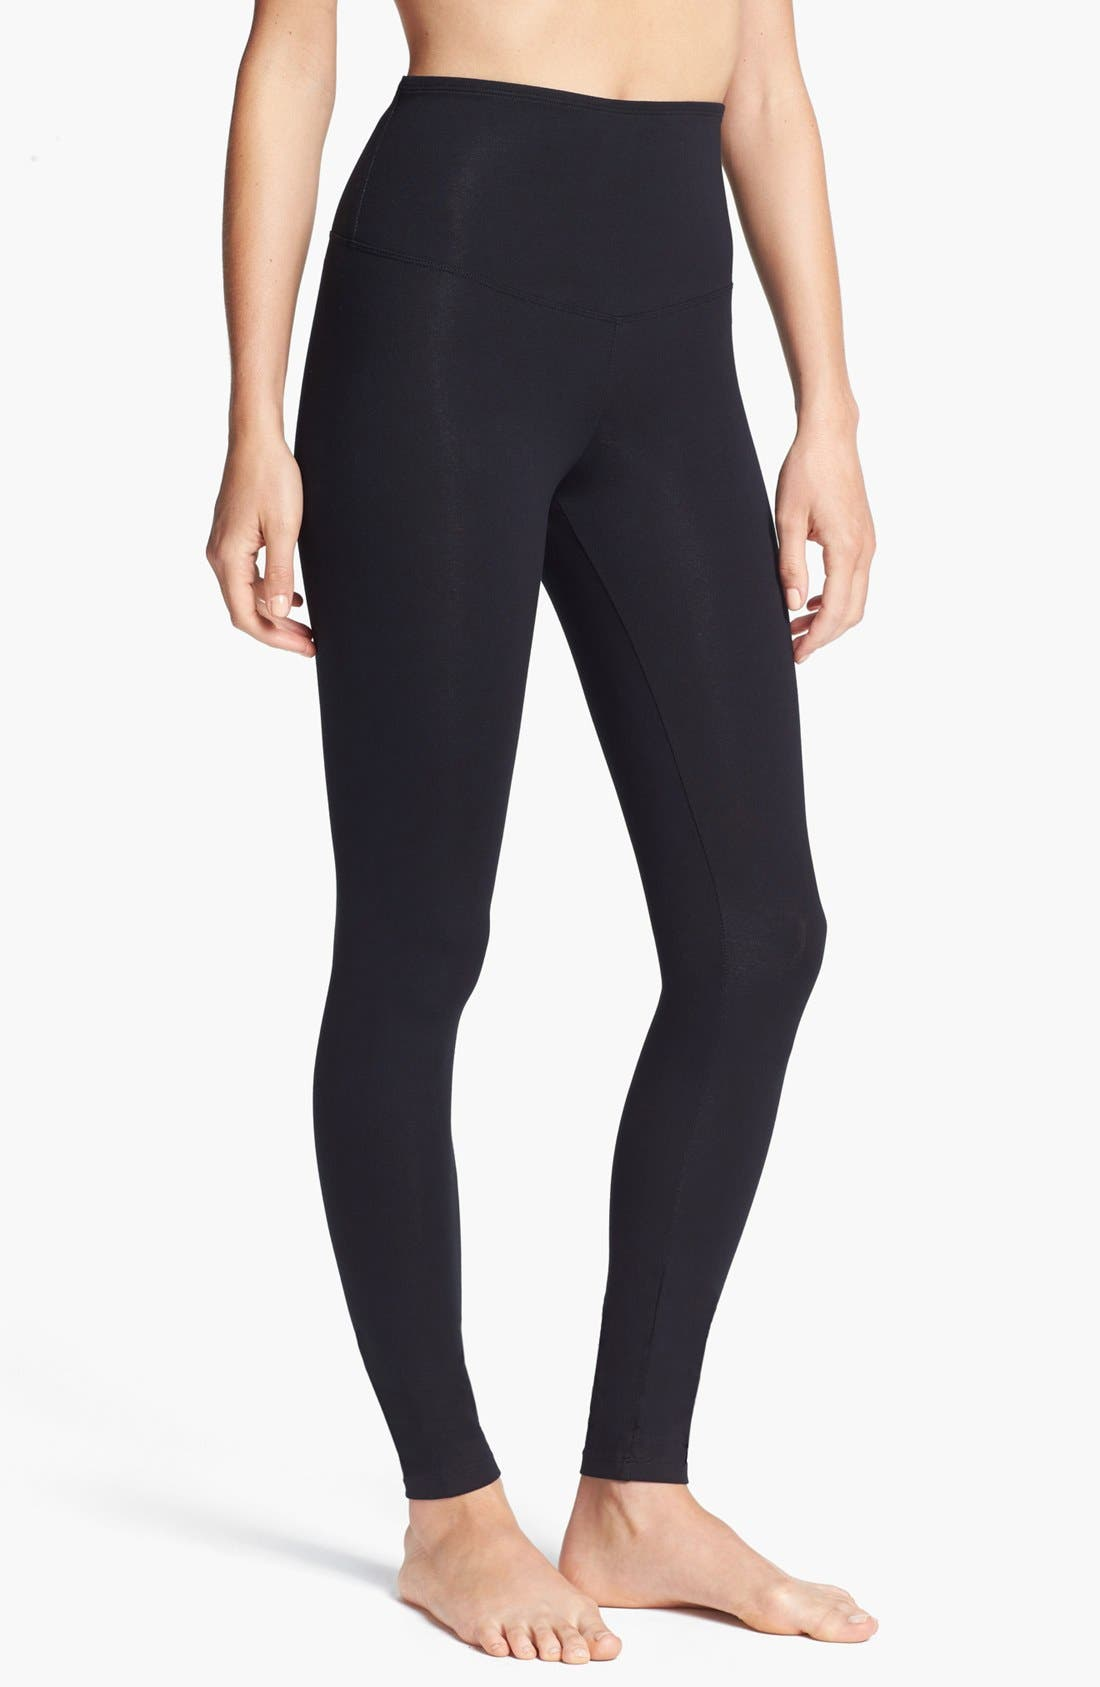 'Rachel' High Waist Leggings,                             Main thumbnail 1, color,                             BLACK